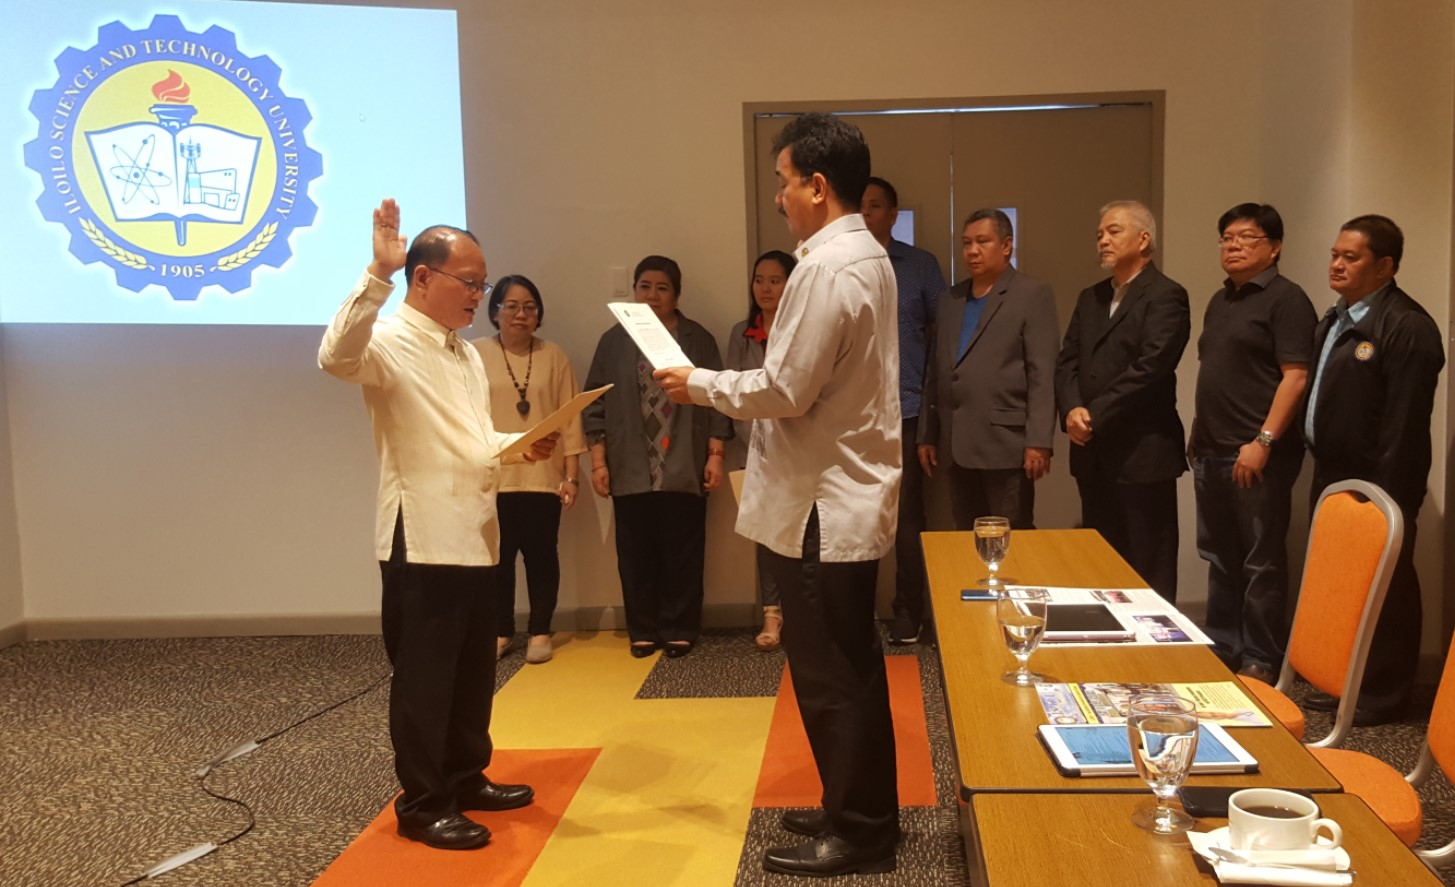 CHEd Chair J. Prospero E. De Vera III administers the oath of office of Dr. Raul F. Muyong for his second term as ISAT U President during the 4th Quarter Board Meeting at  Park Inn by Radisson Hotel, Iloilo on December 22, 2019.   Witnessing the ceremony are the members of ISAT U Board of Regents.